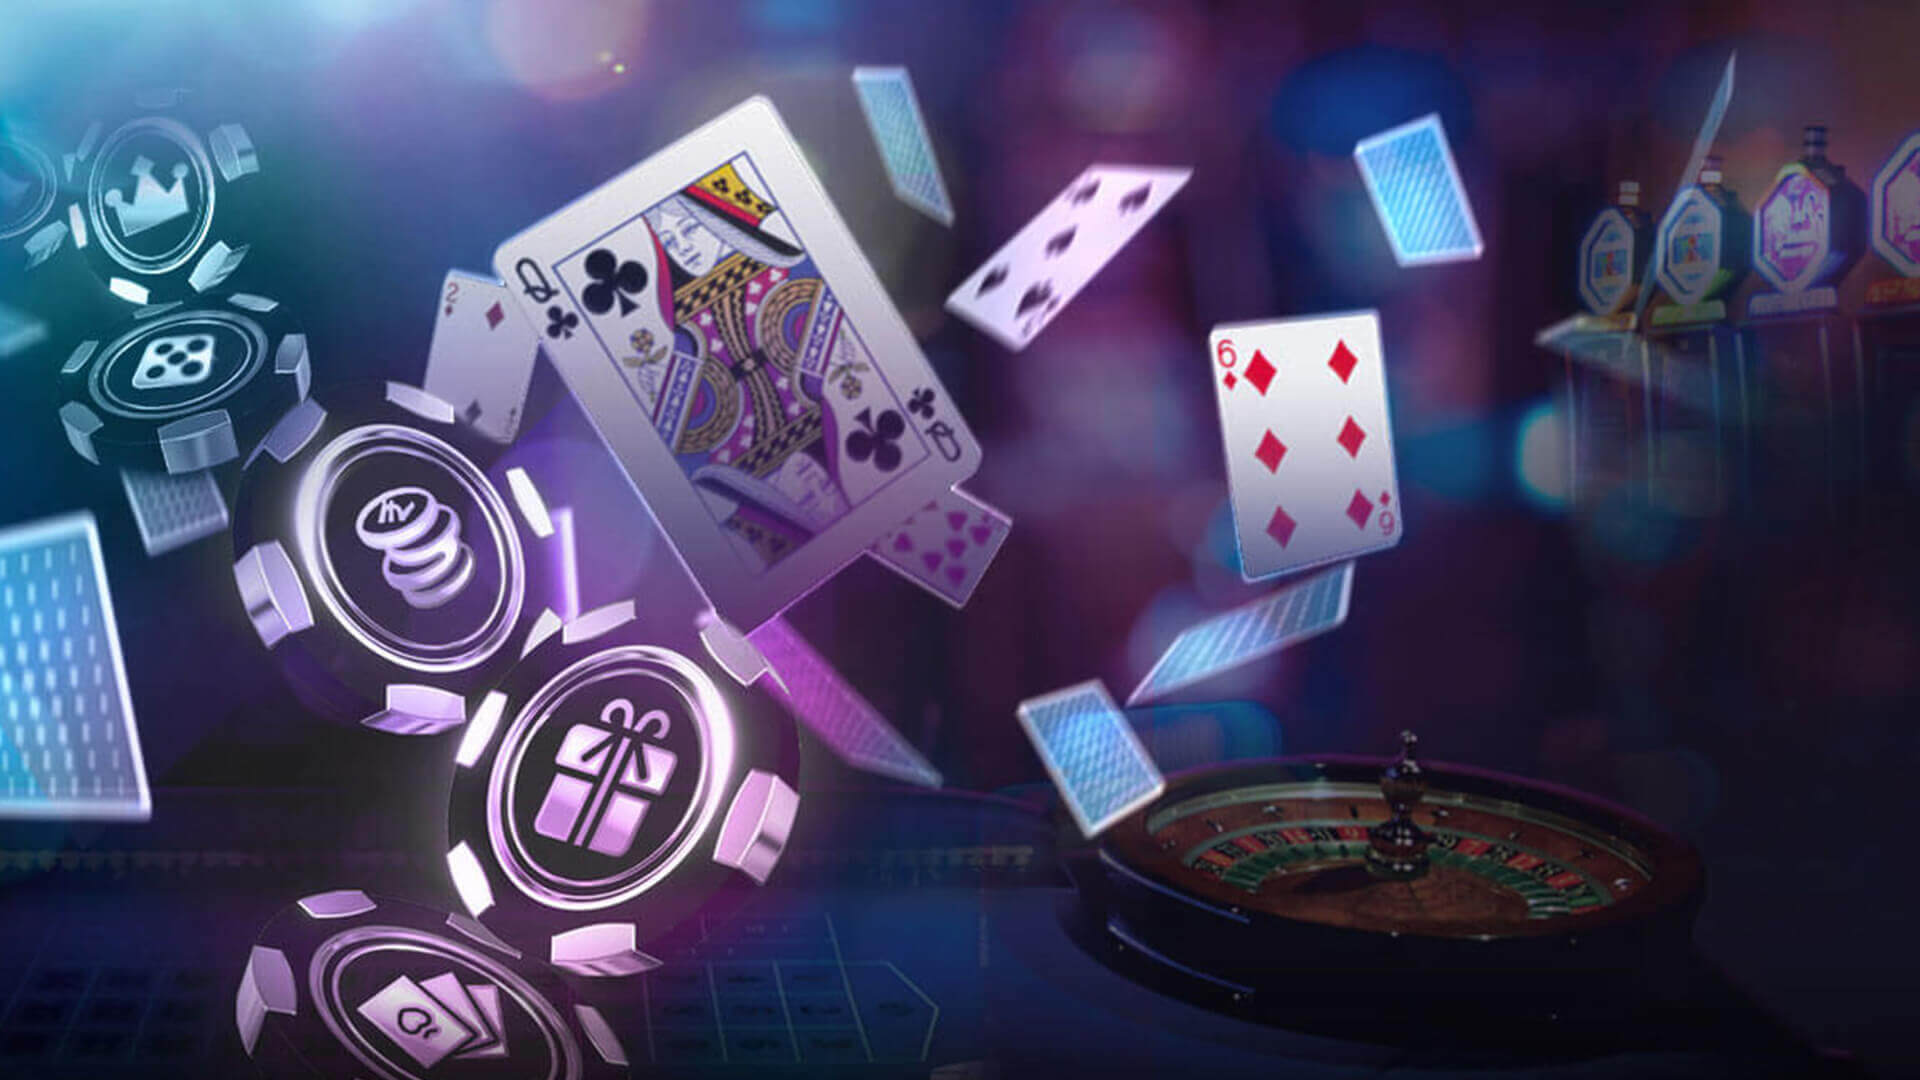 What to check in an online casino?